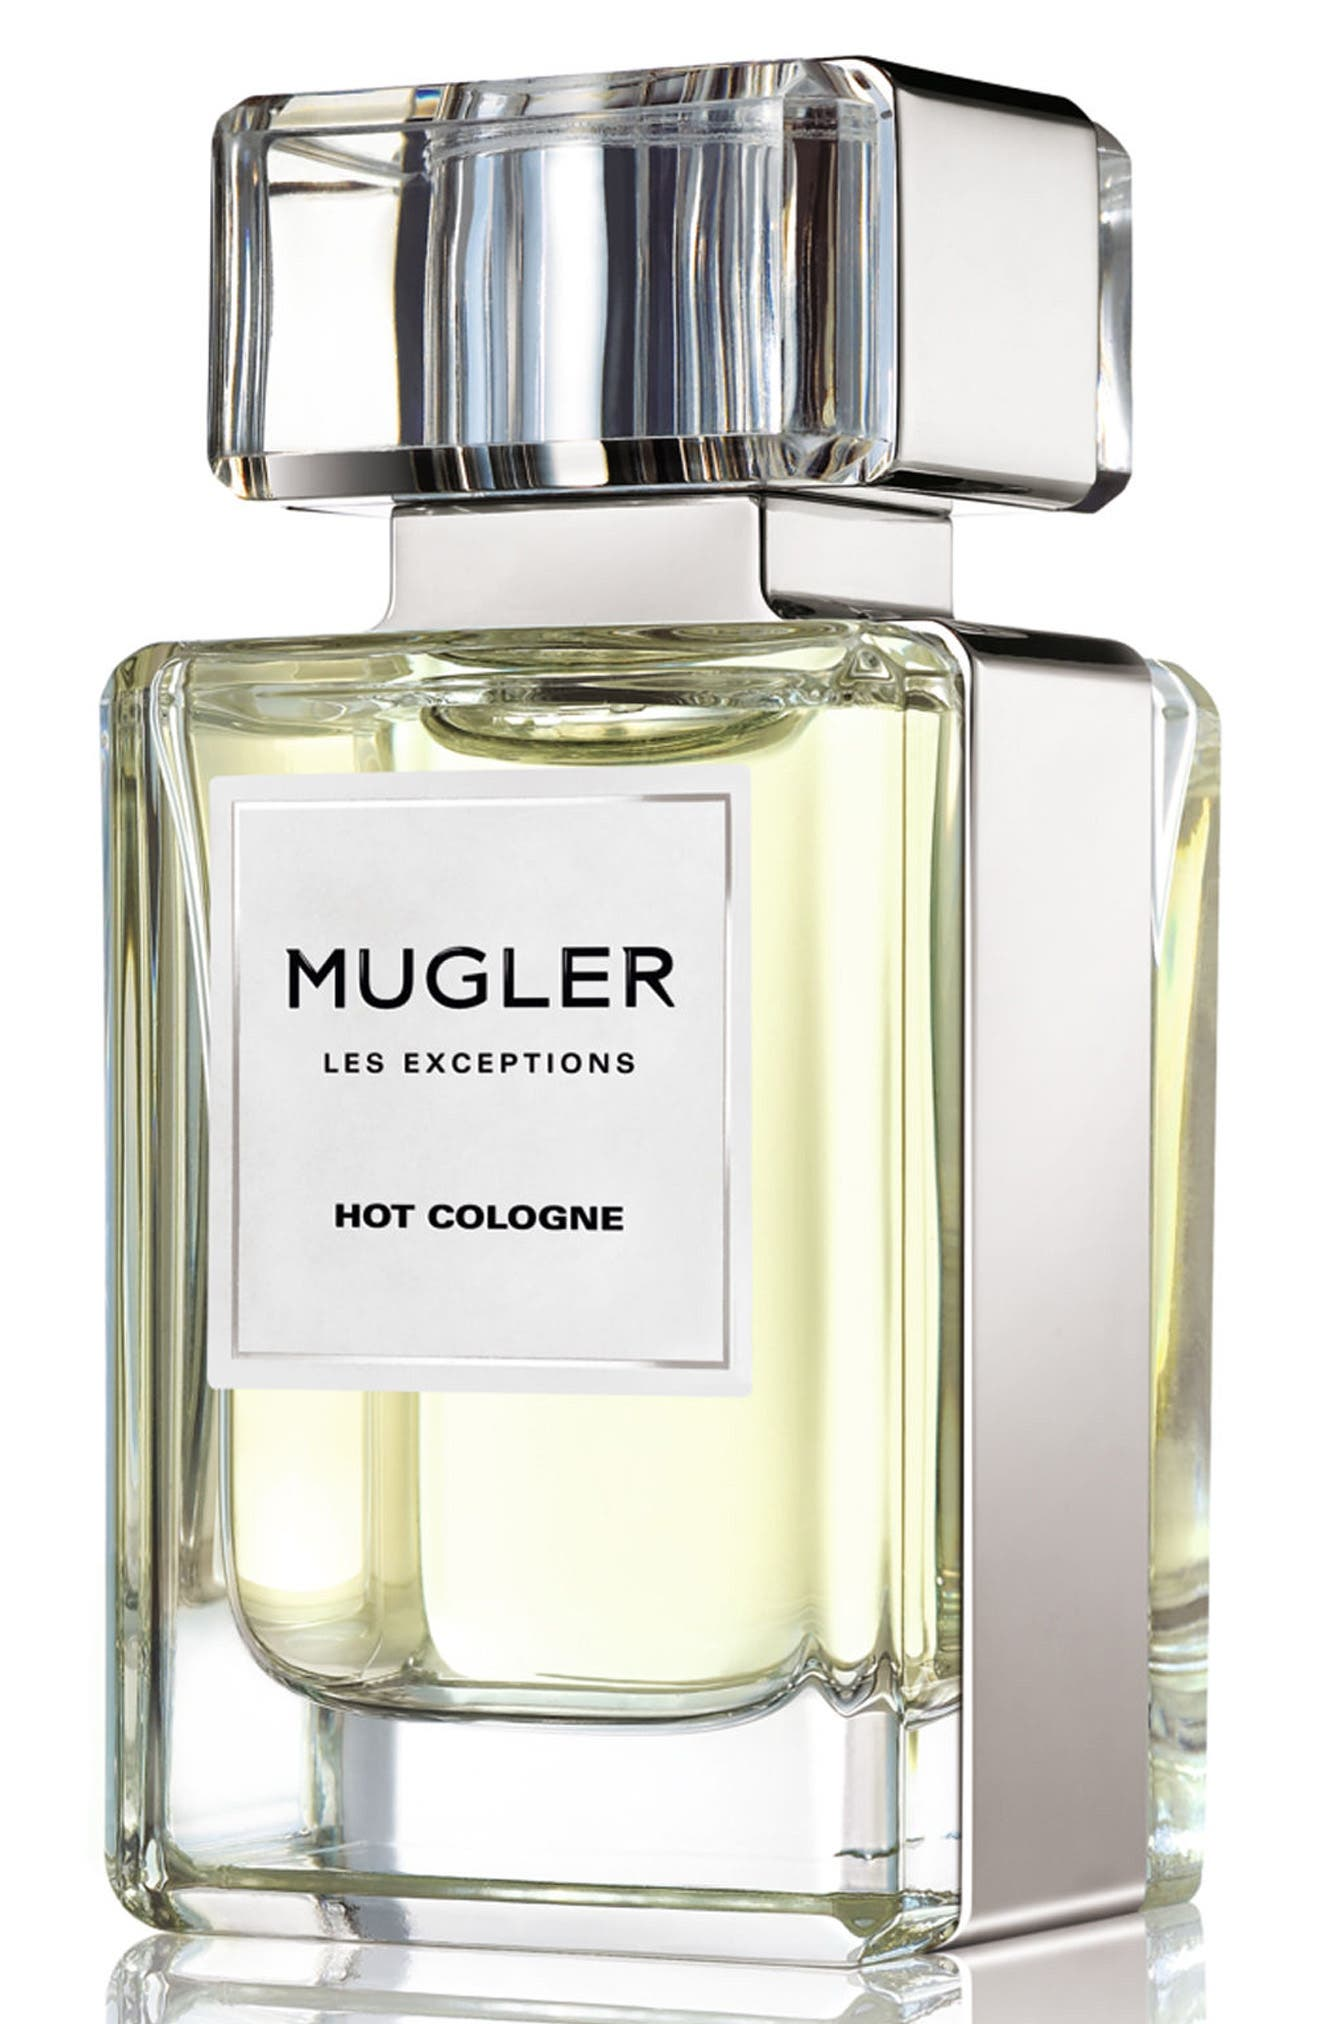 Mugler HOT COLOGNE EAU DE PARFUM REFILLABLE SPRAY